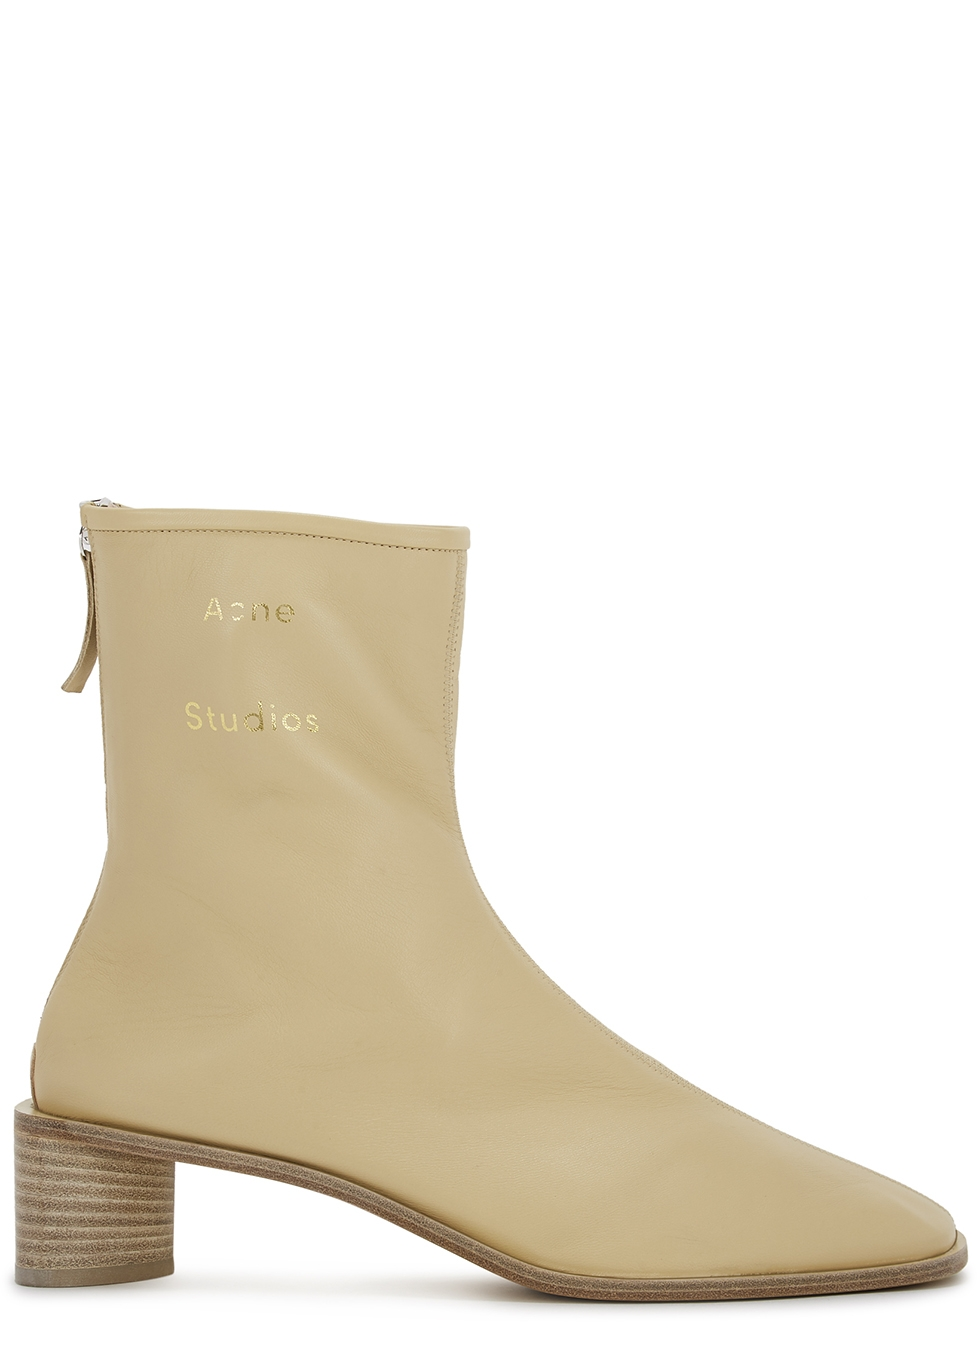 45 sand leather ankle boots